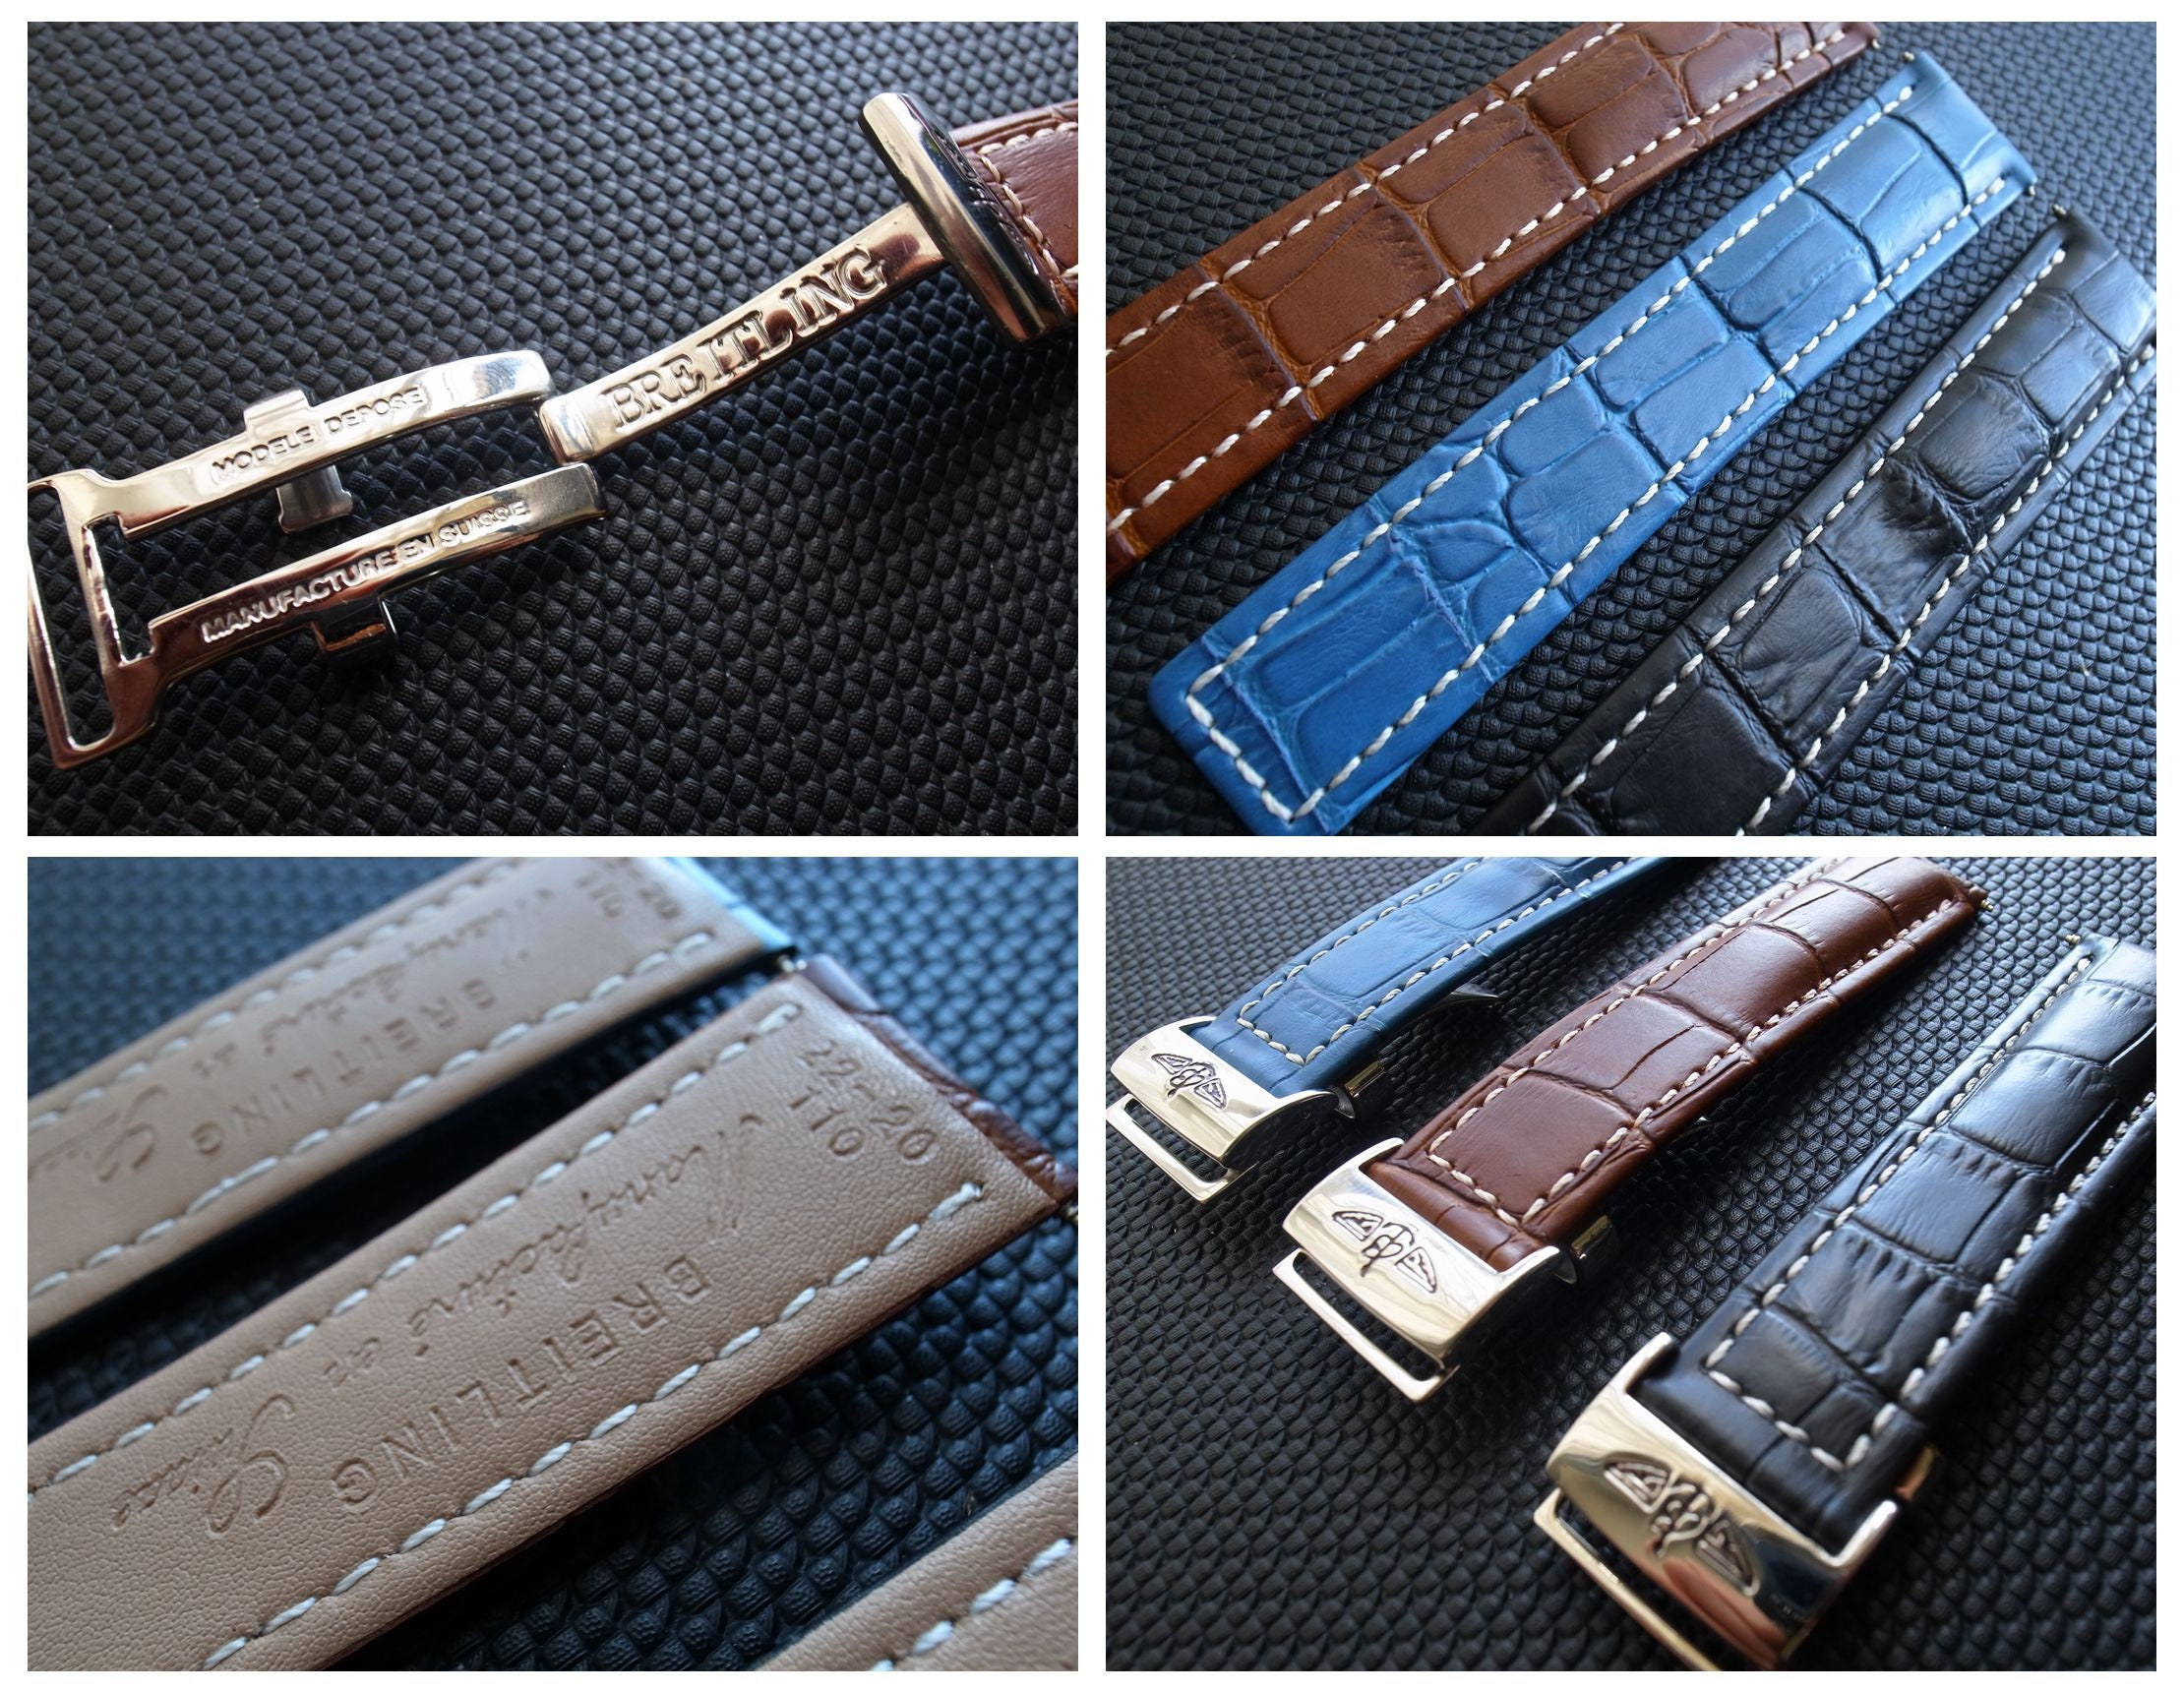 22mm Leather Strap for Breitling Watch with Deployment Clasp Buckle